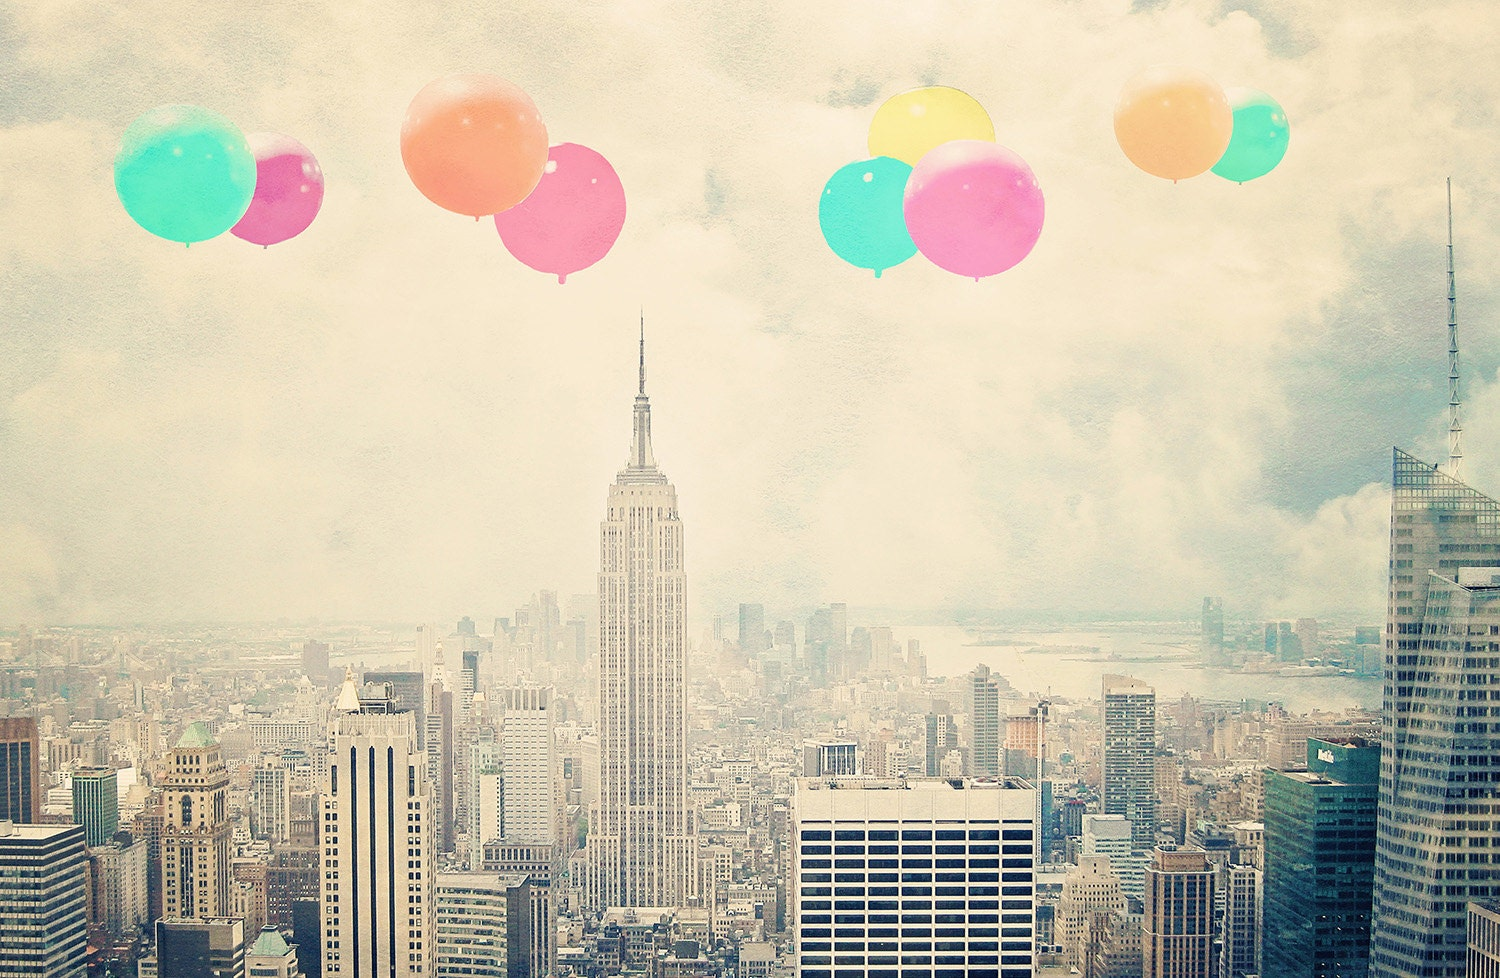 New York Photography Balloons Over The City Fine Art Print